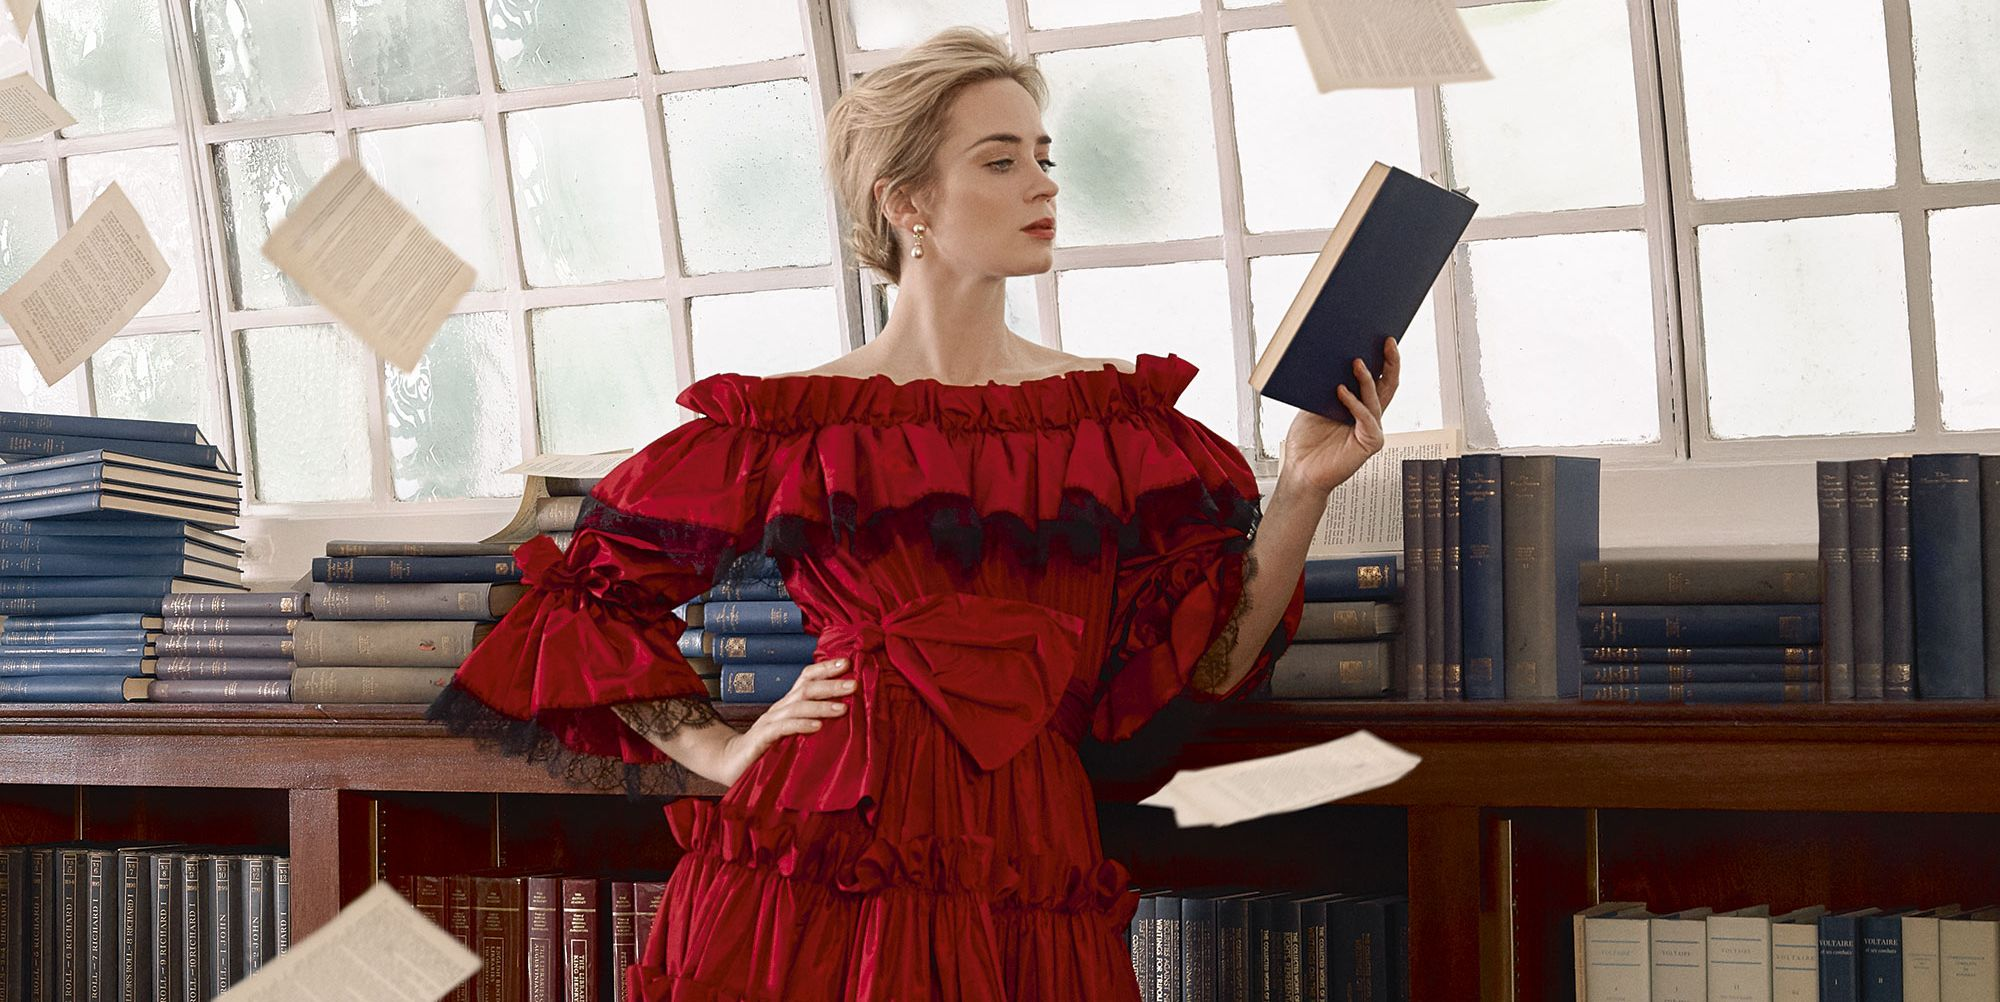 Emily Blunt in the January 2018 issue of Harper's Bazaar